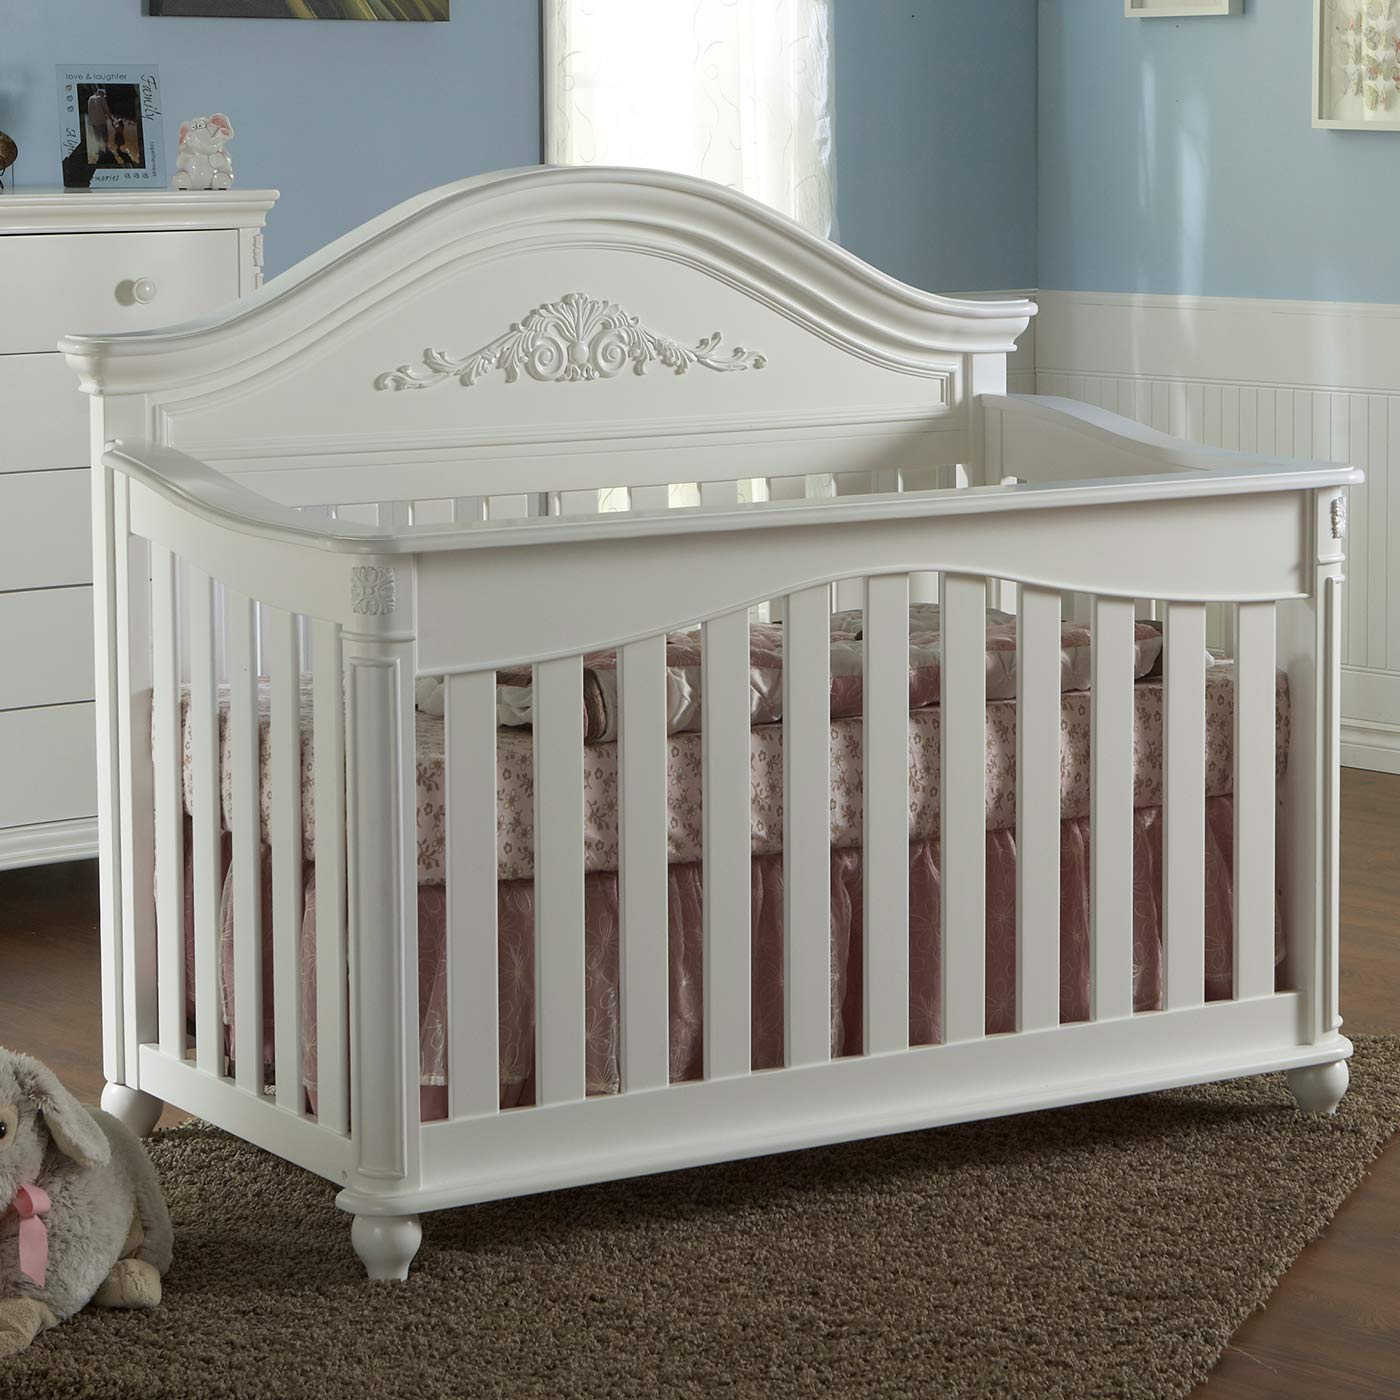 Pali crib for sale used - Pali Crib For Sale Used 1